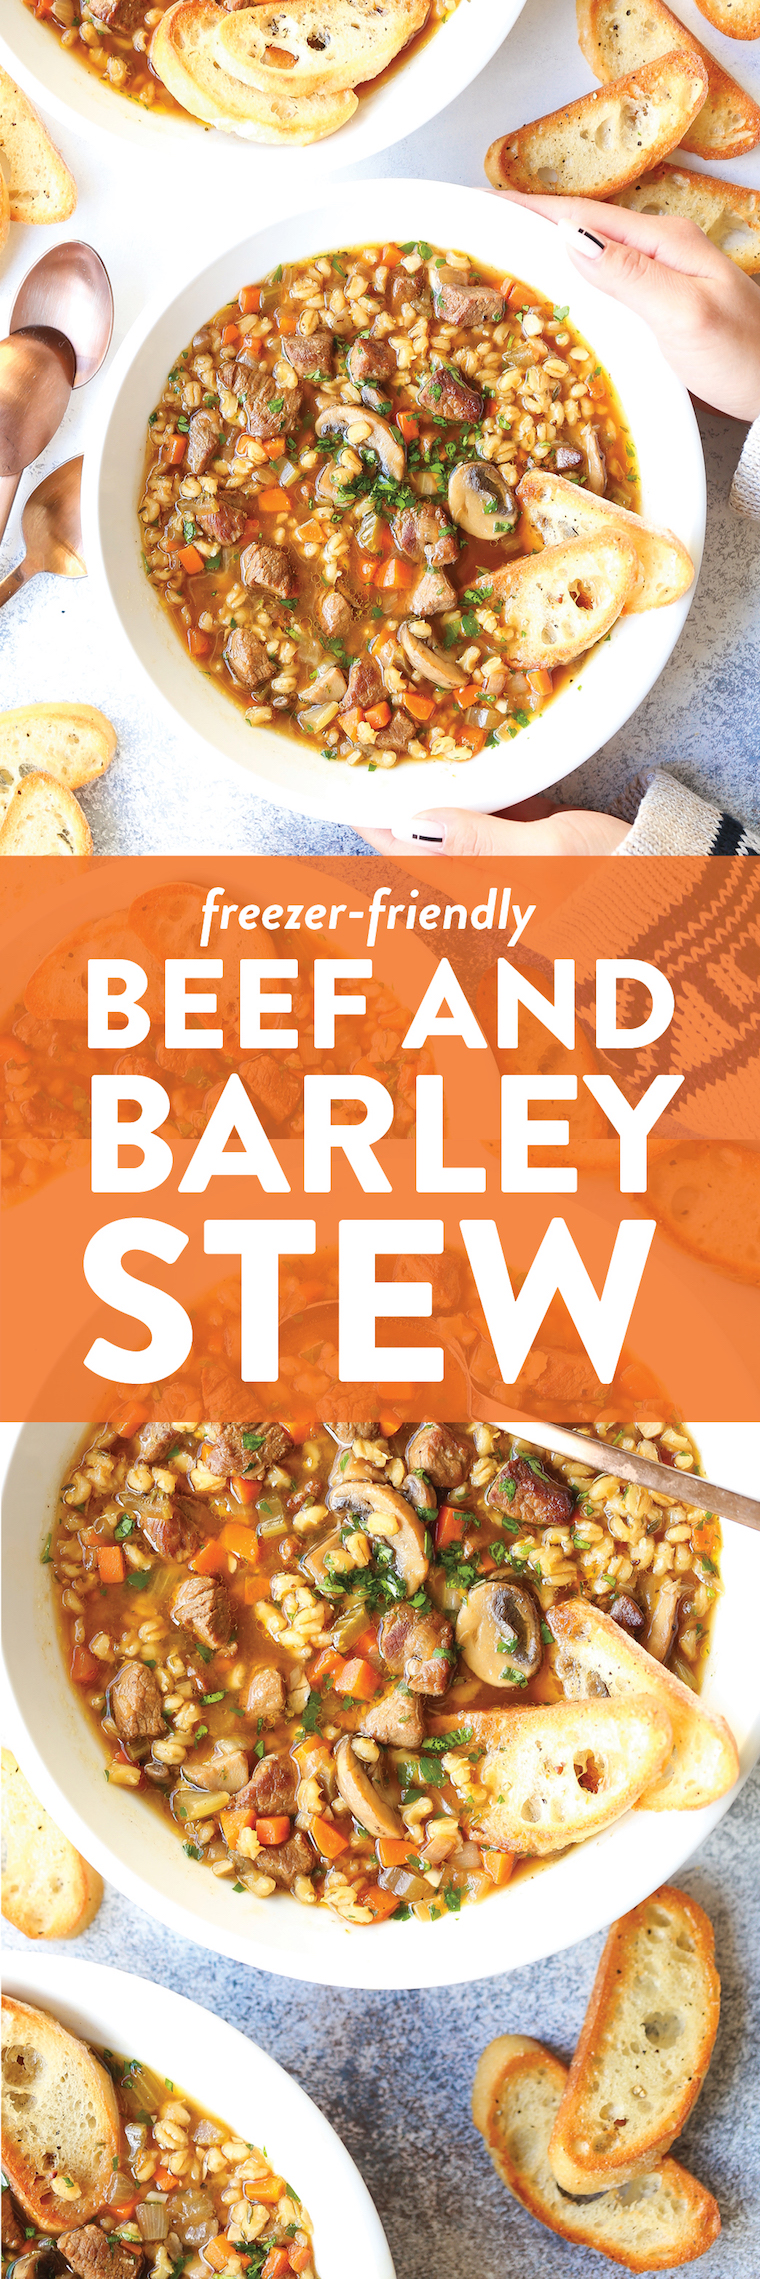 Beef and Barley Stew - Melting-tender beef chunks, perfectly cooked barley, and all the hearty veggies one can ask for. Best of all, it's freezer-friendly!